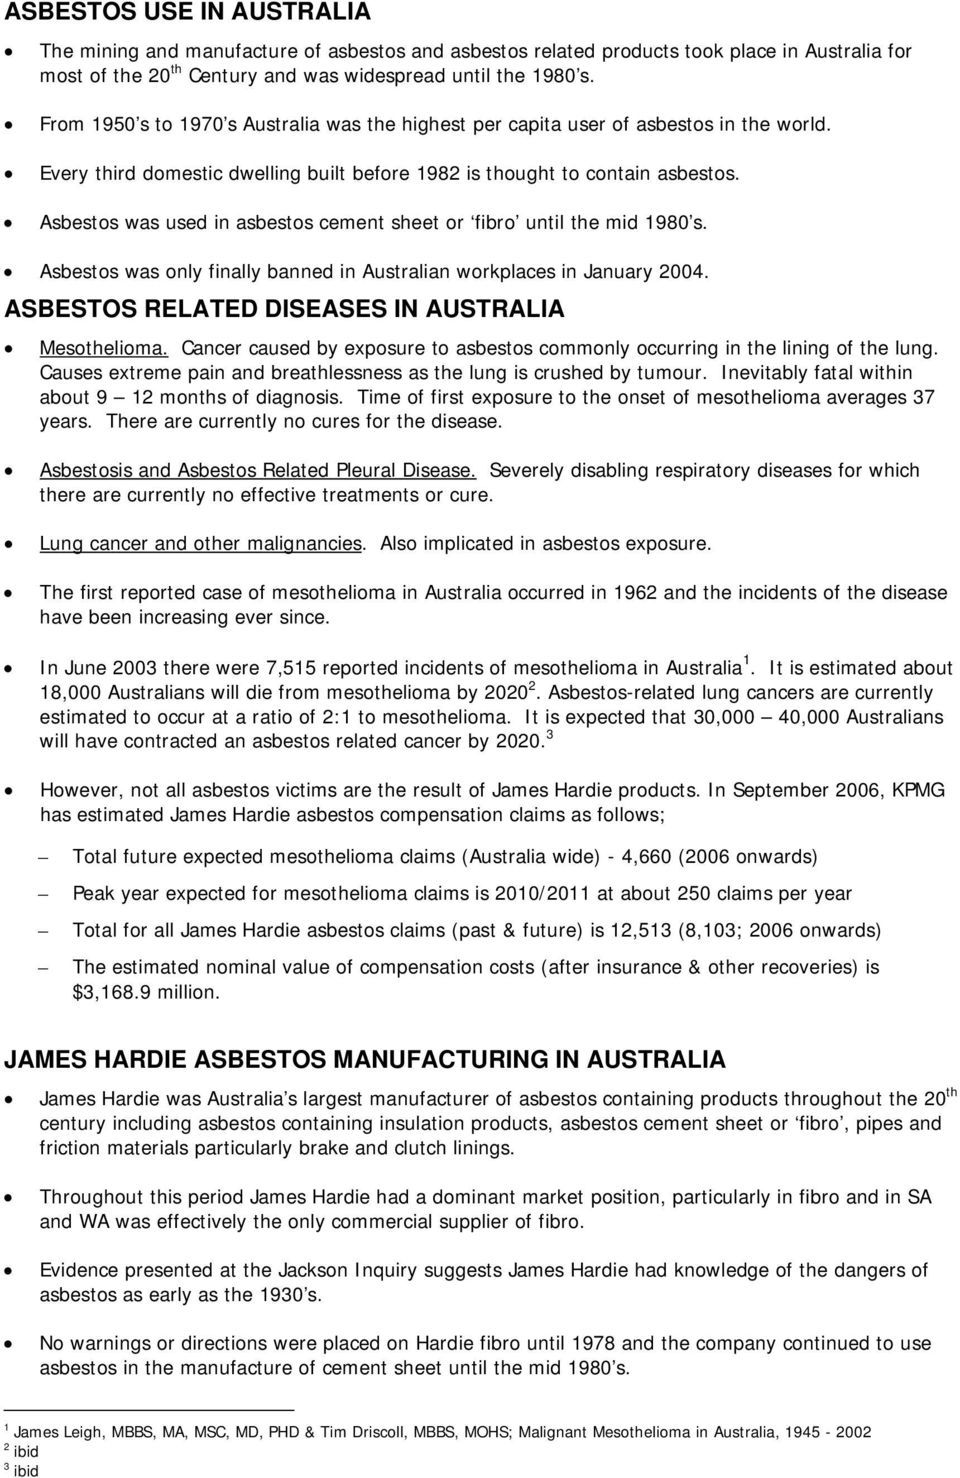 Asbestos was used in asbestos cement sheet or fibro until the mid 1980 s. Asbestos was only finally banned in Australian workplaces in January 2004.